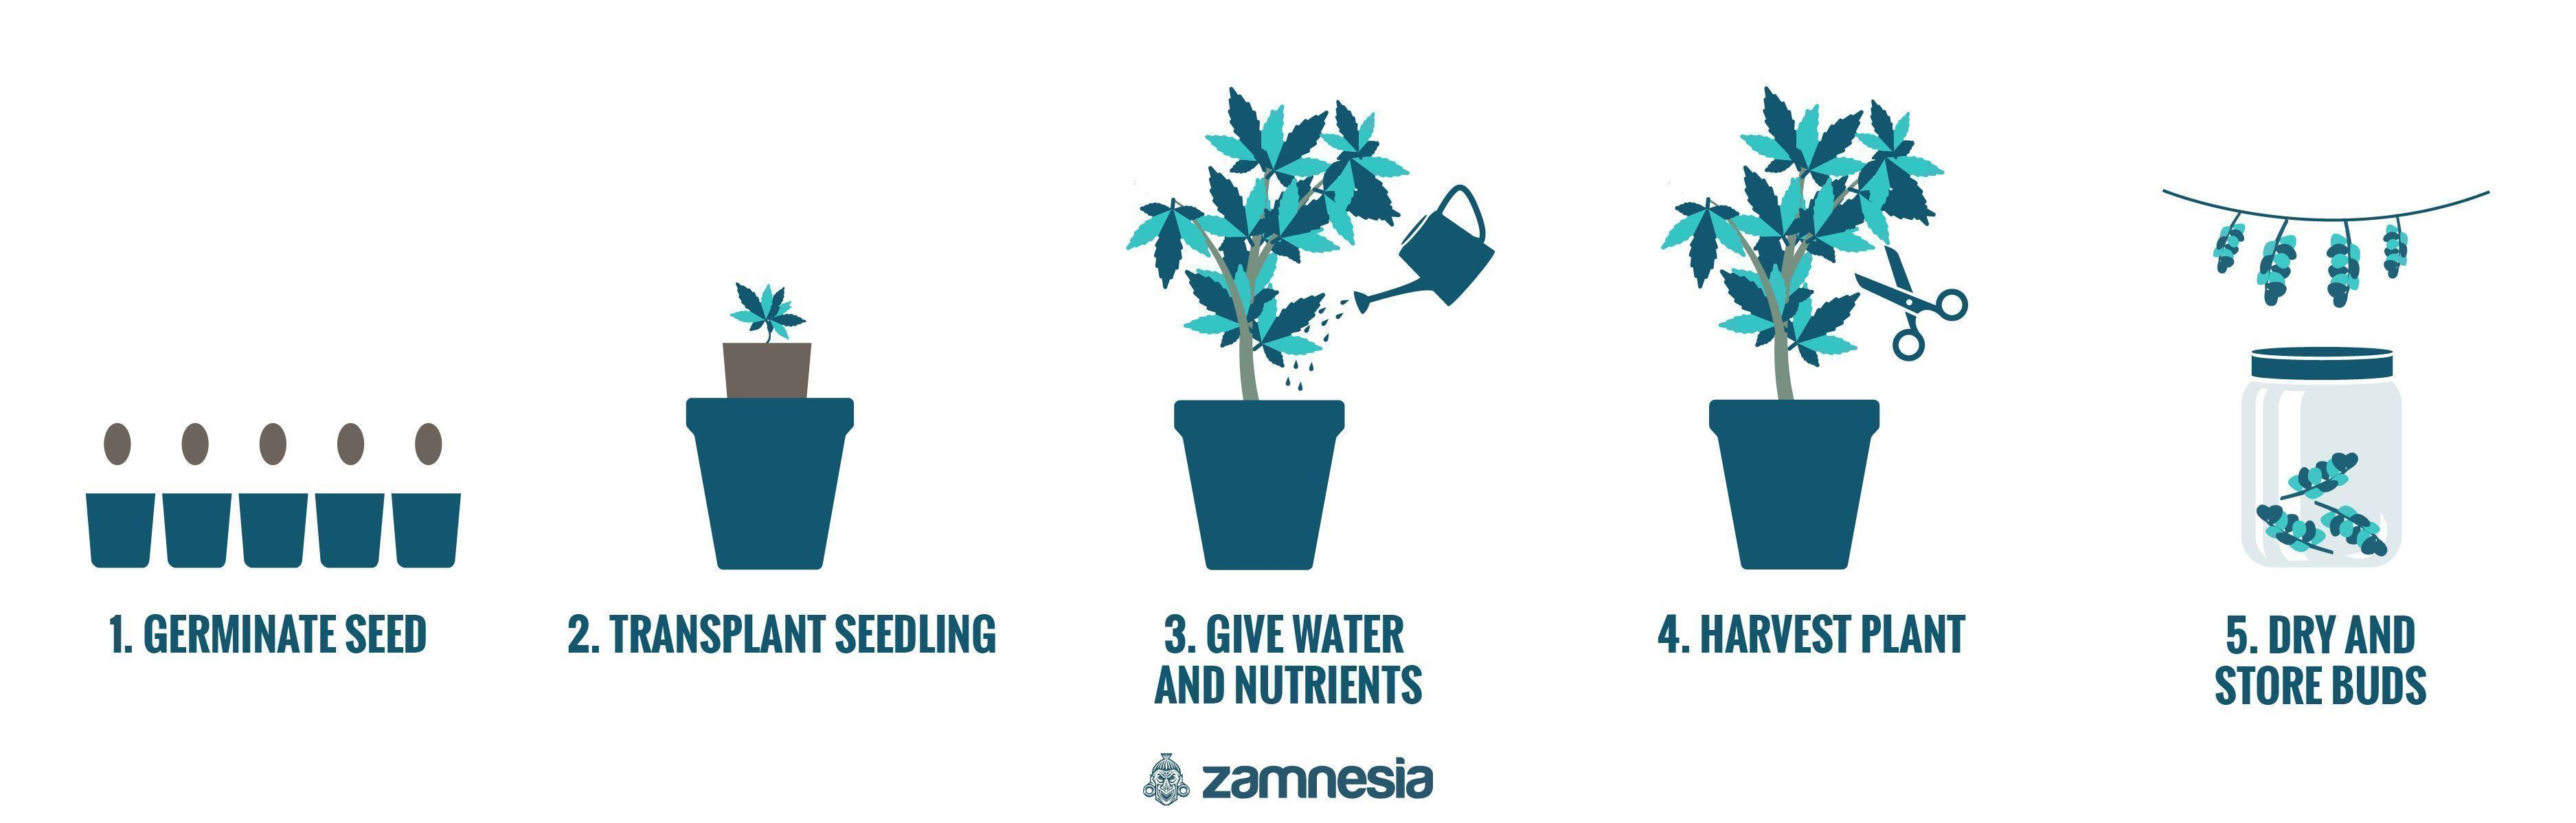 Growing Cannabis In 5 Easy Steps